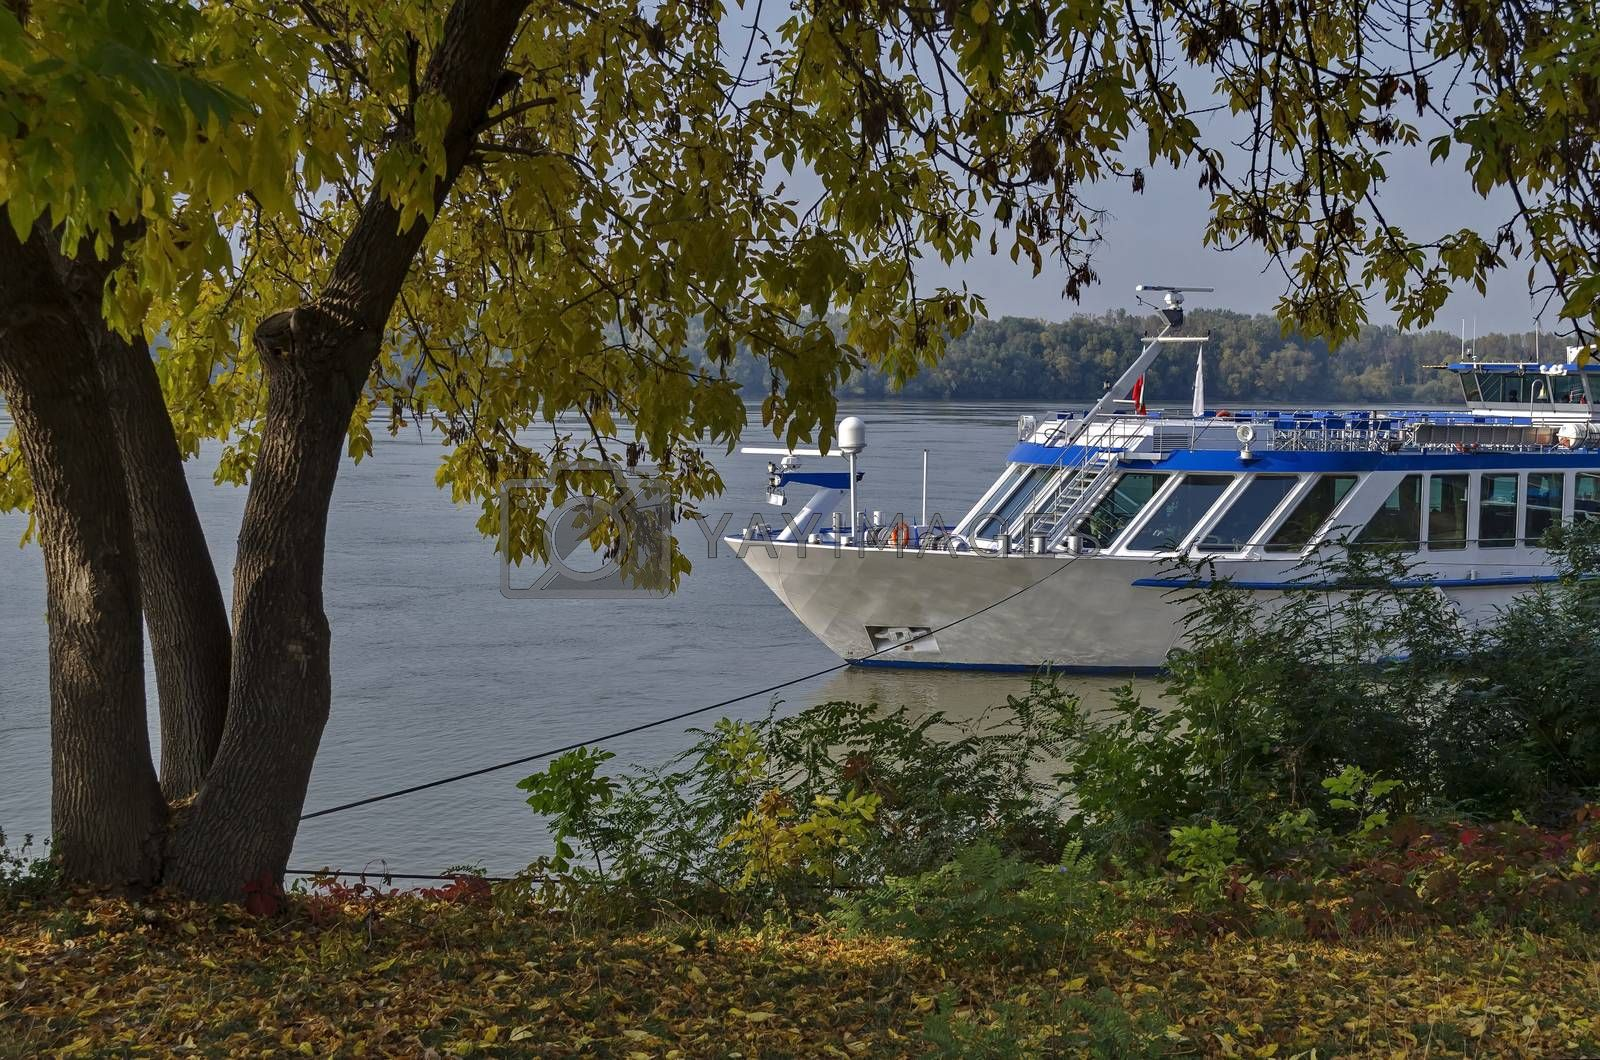 Royalty free image of Passenger cruise ship in Ruse port at Danube river, Bulgaria by vili45